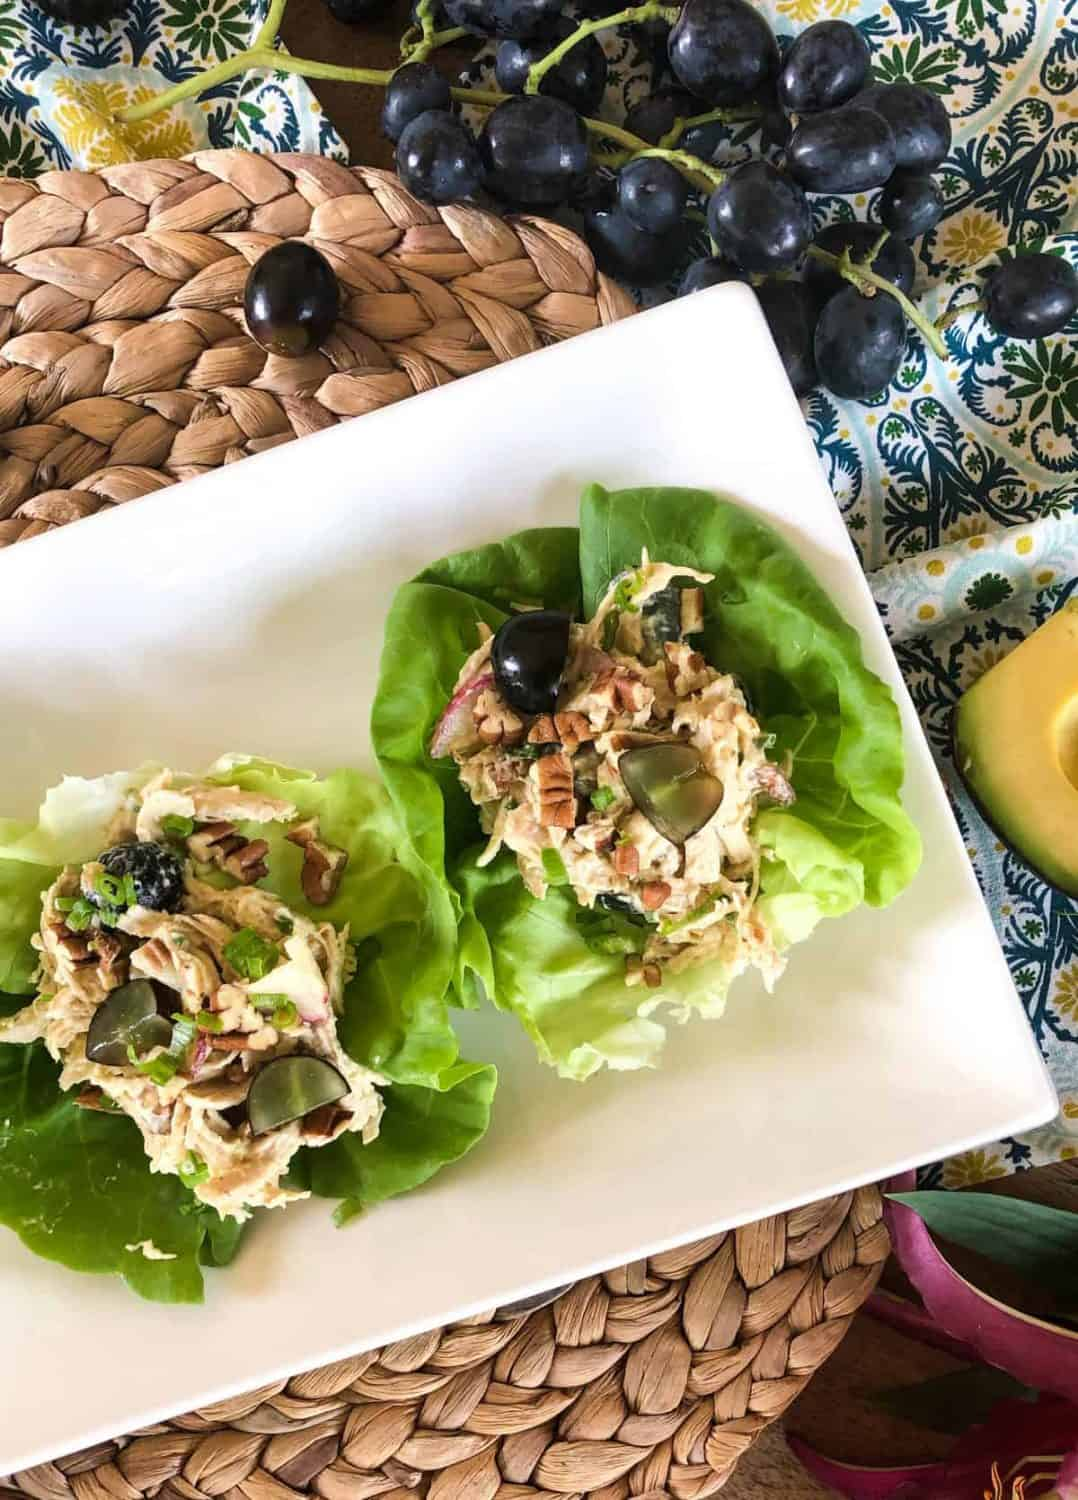 Lettuce cups filled with a chicken, radish , and grape salad.